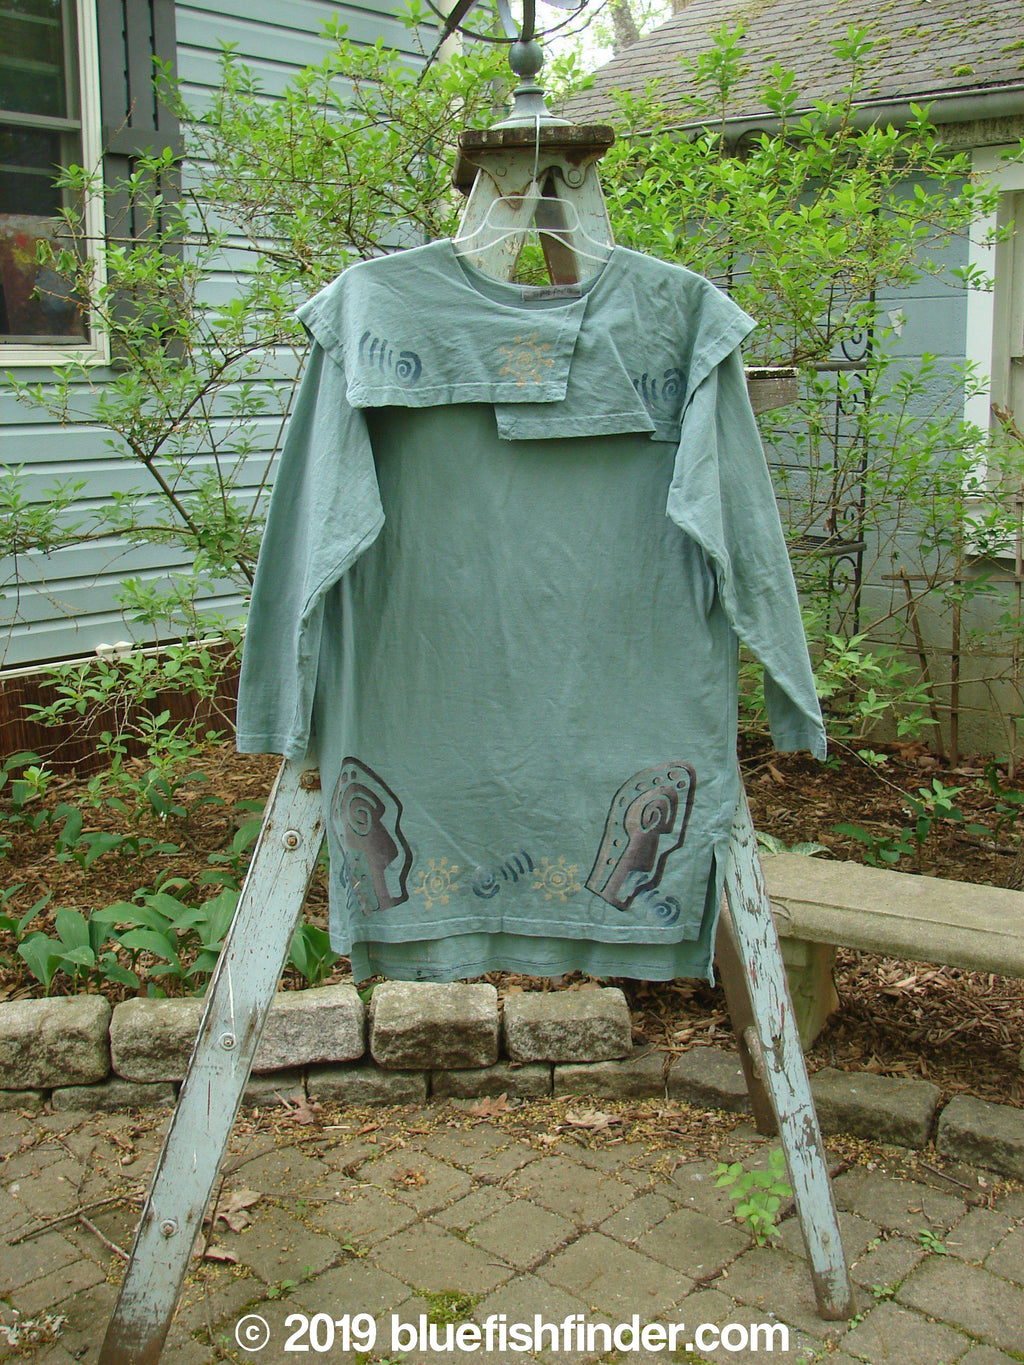 Vintage Blue Fish Clothing 1996 Trifocal Top Celestial Trinket Size 1- Bluefishfinder.com